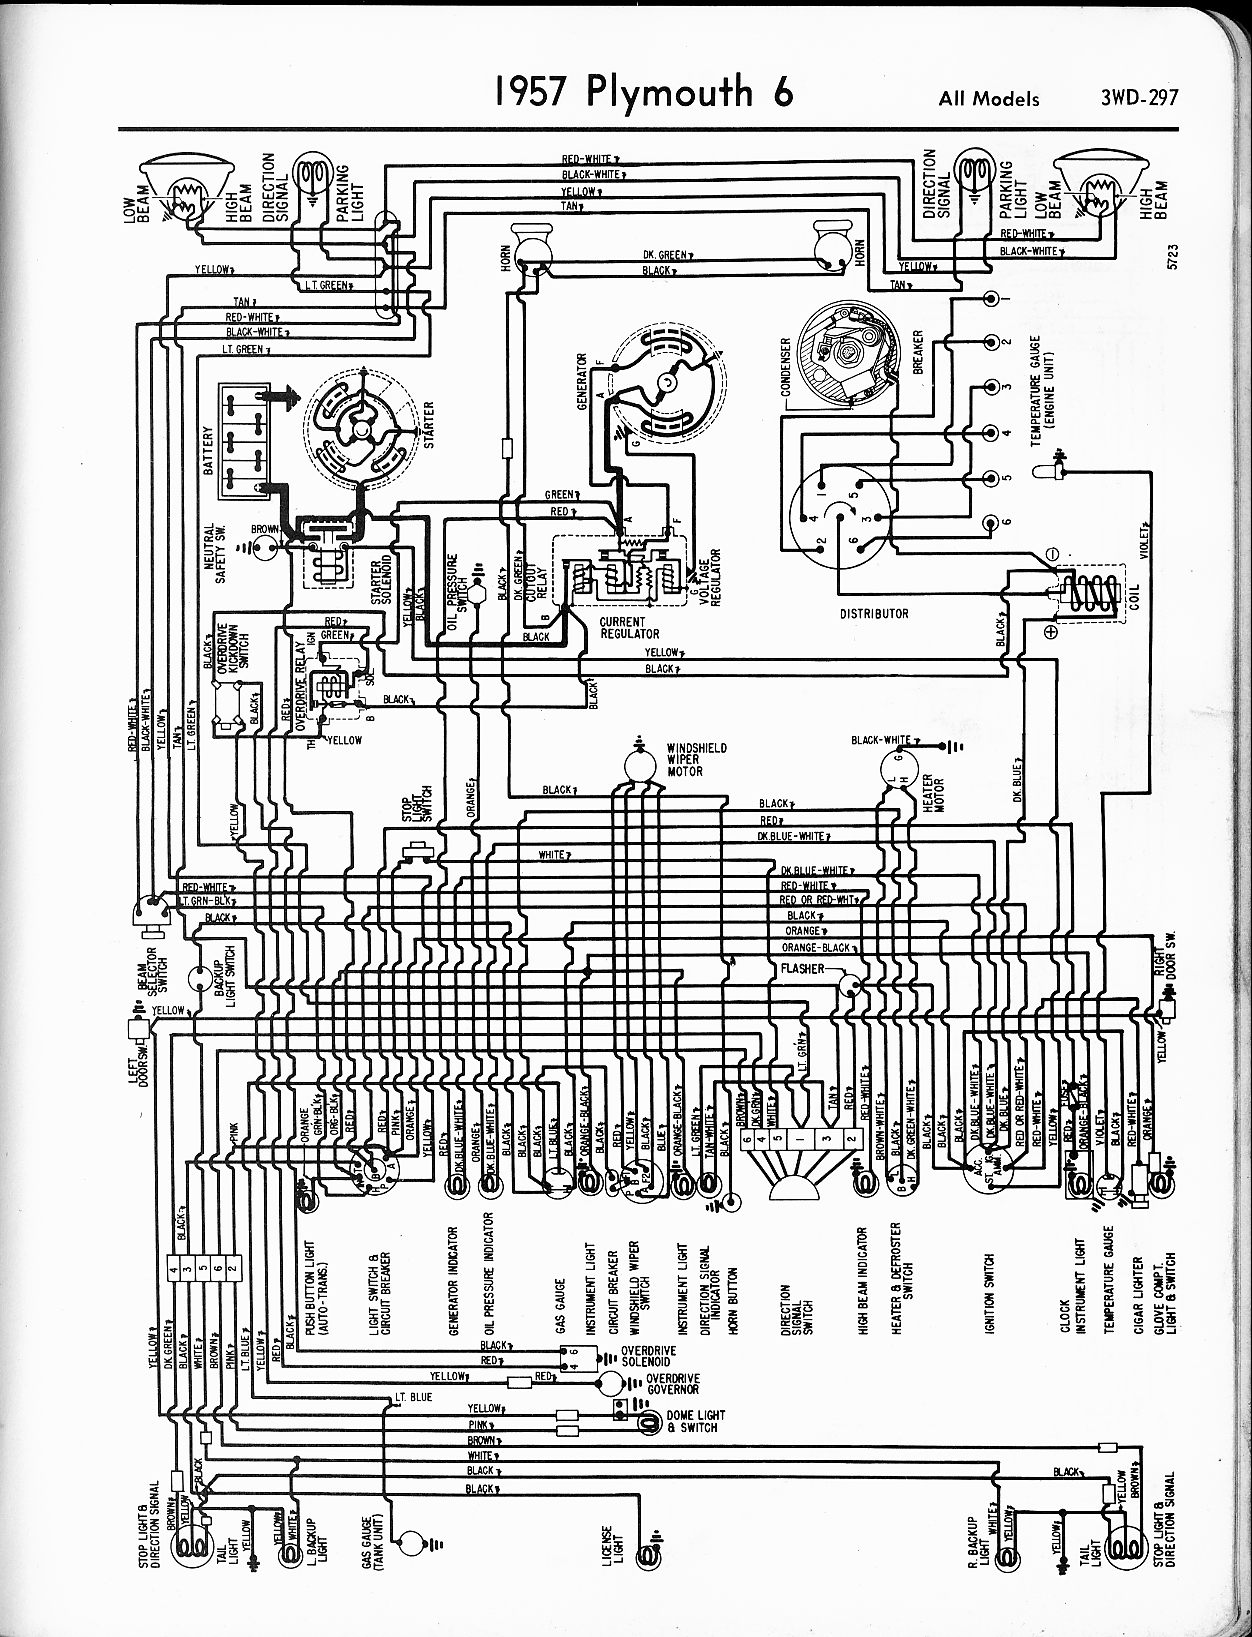 MWire5765 297 plymouth wiring schematics plymouth wiring diagrams instruction 1954 plymouth belvedere wiring diagram at crackthecode.co